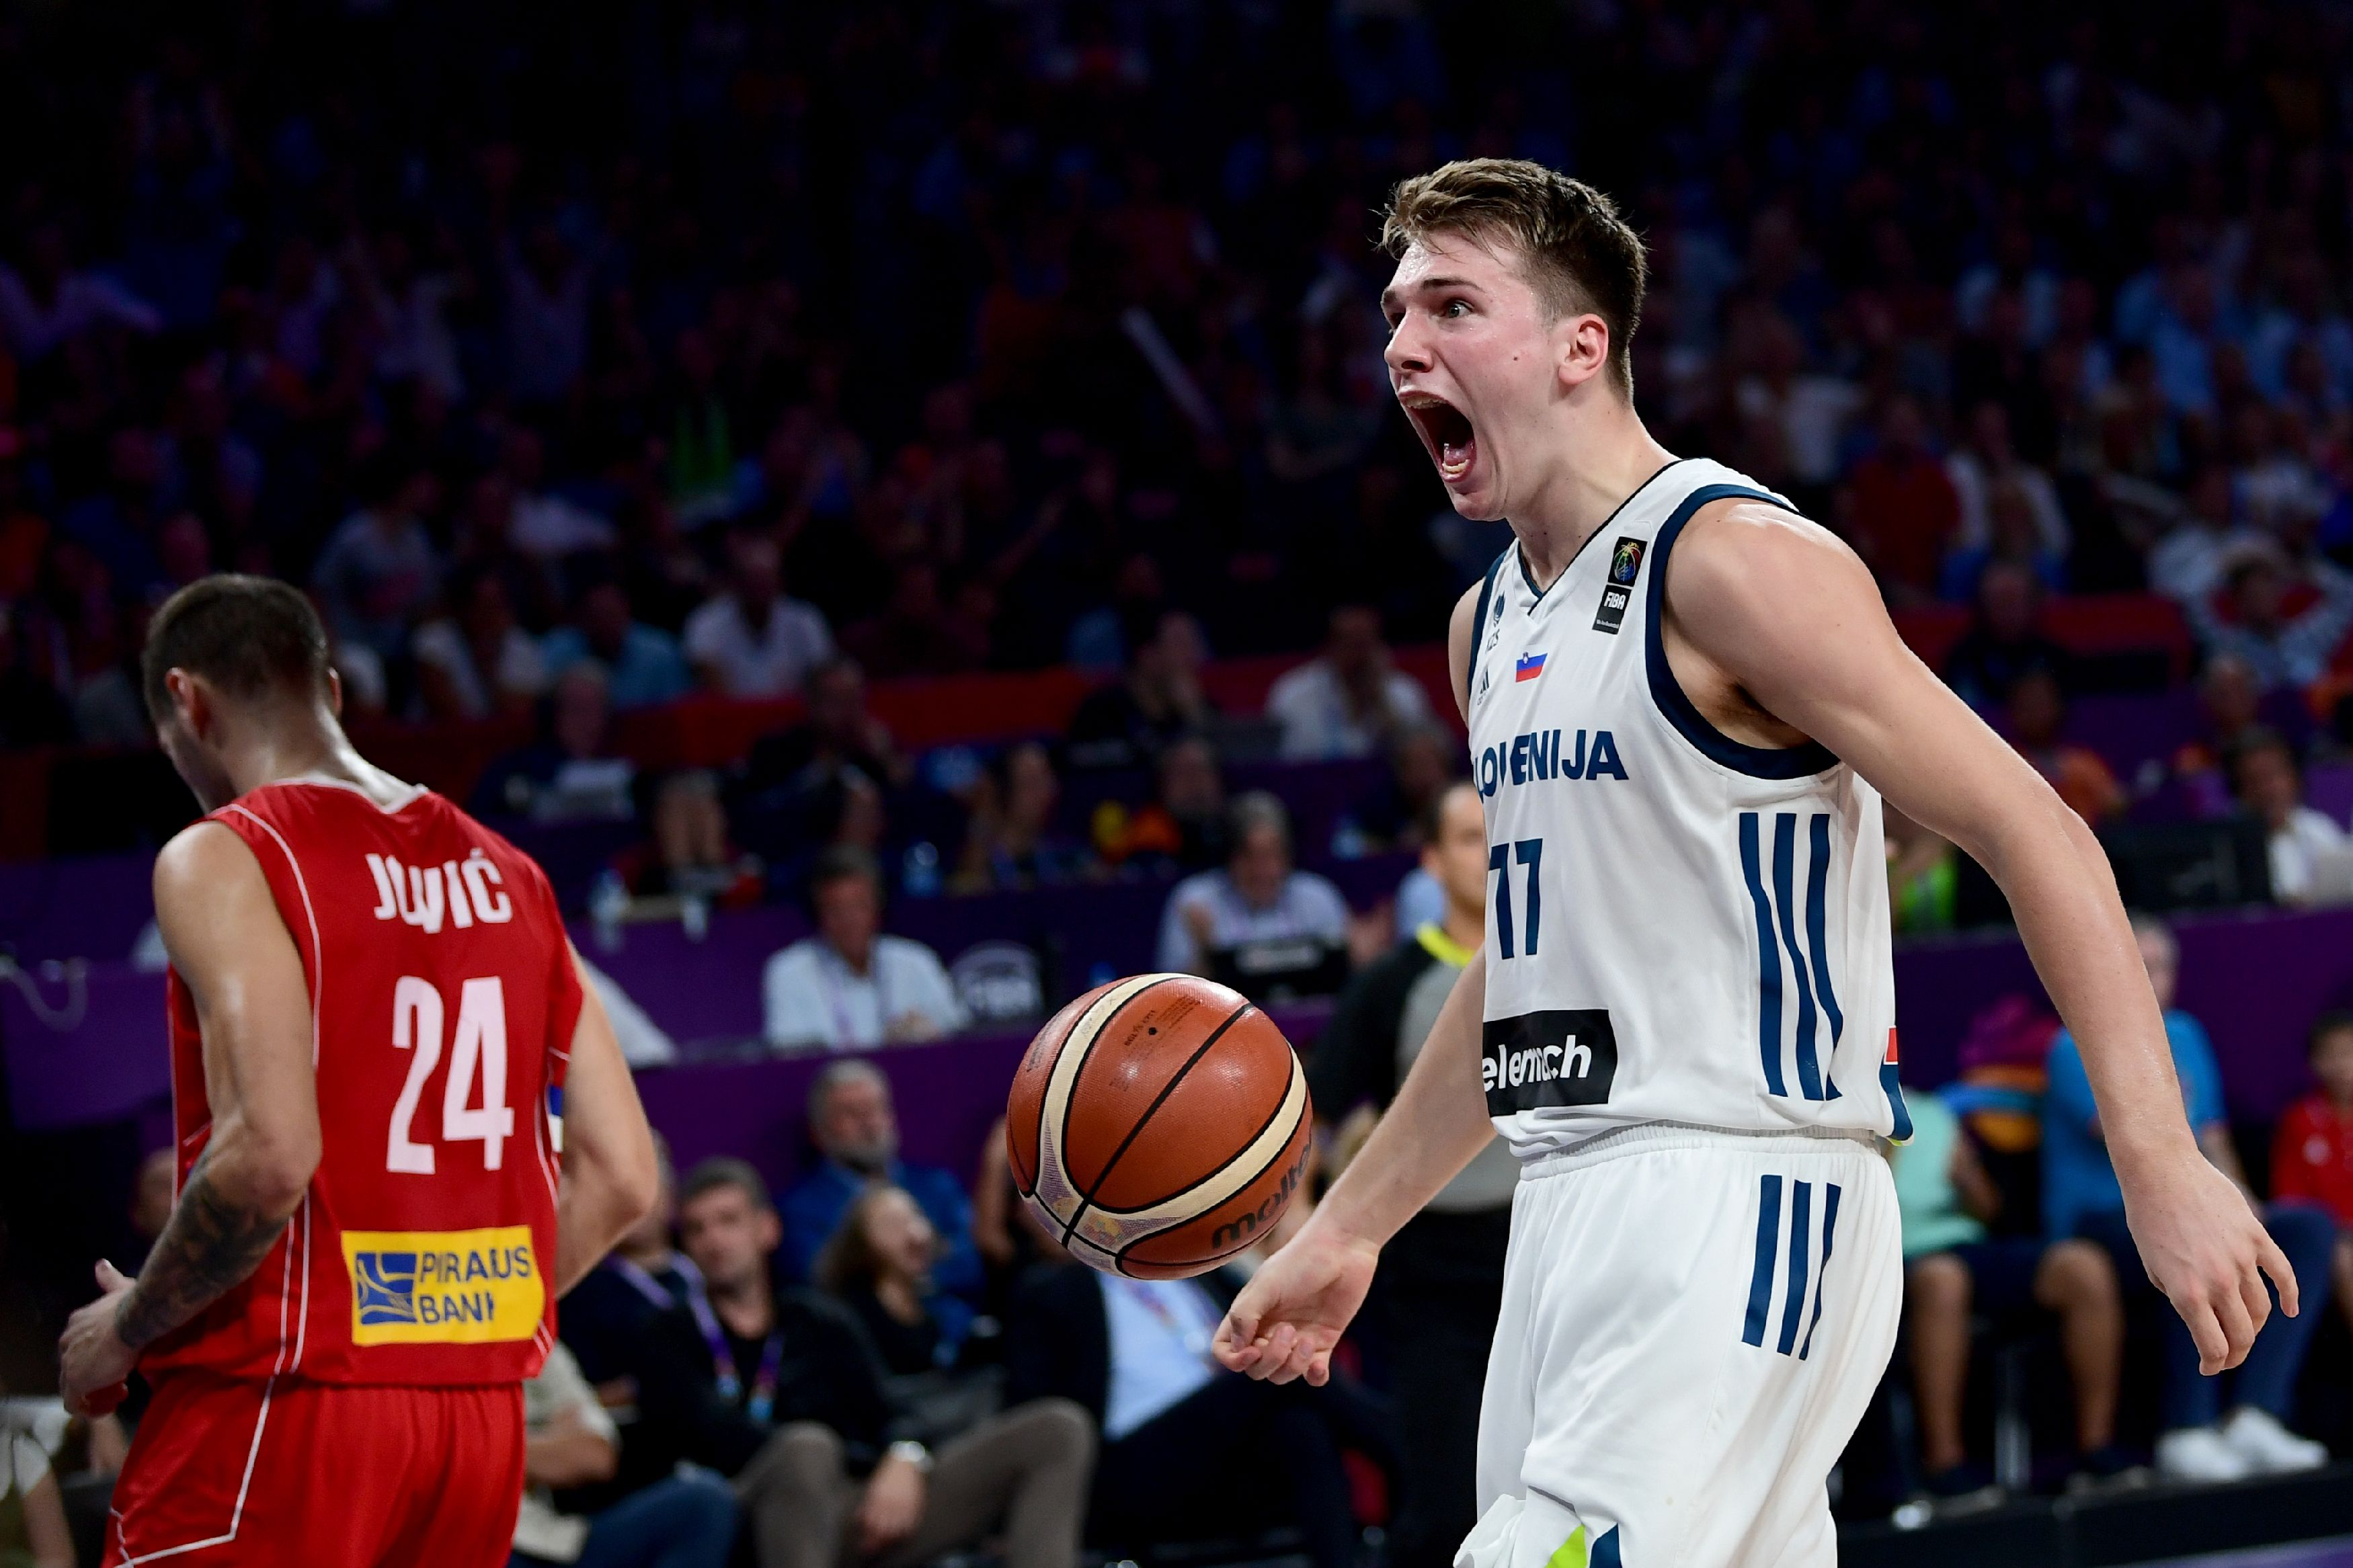 Why Luka Doncic, not Deandre Ayton, is the generational talent Mavericks need from 2018 NBA draft